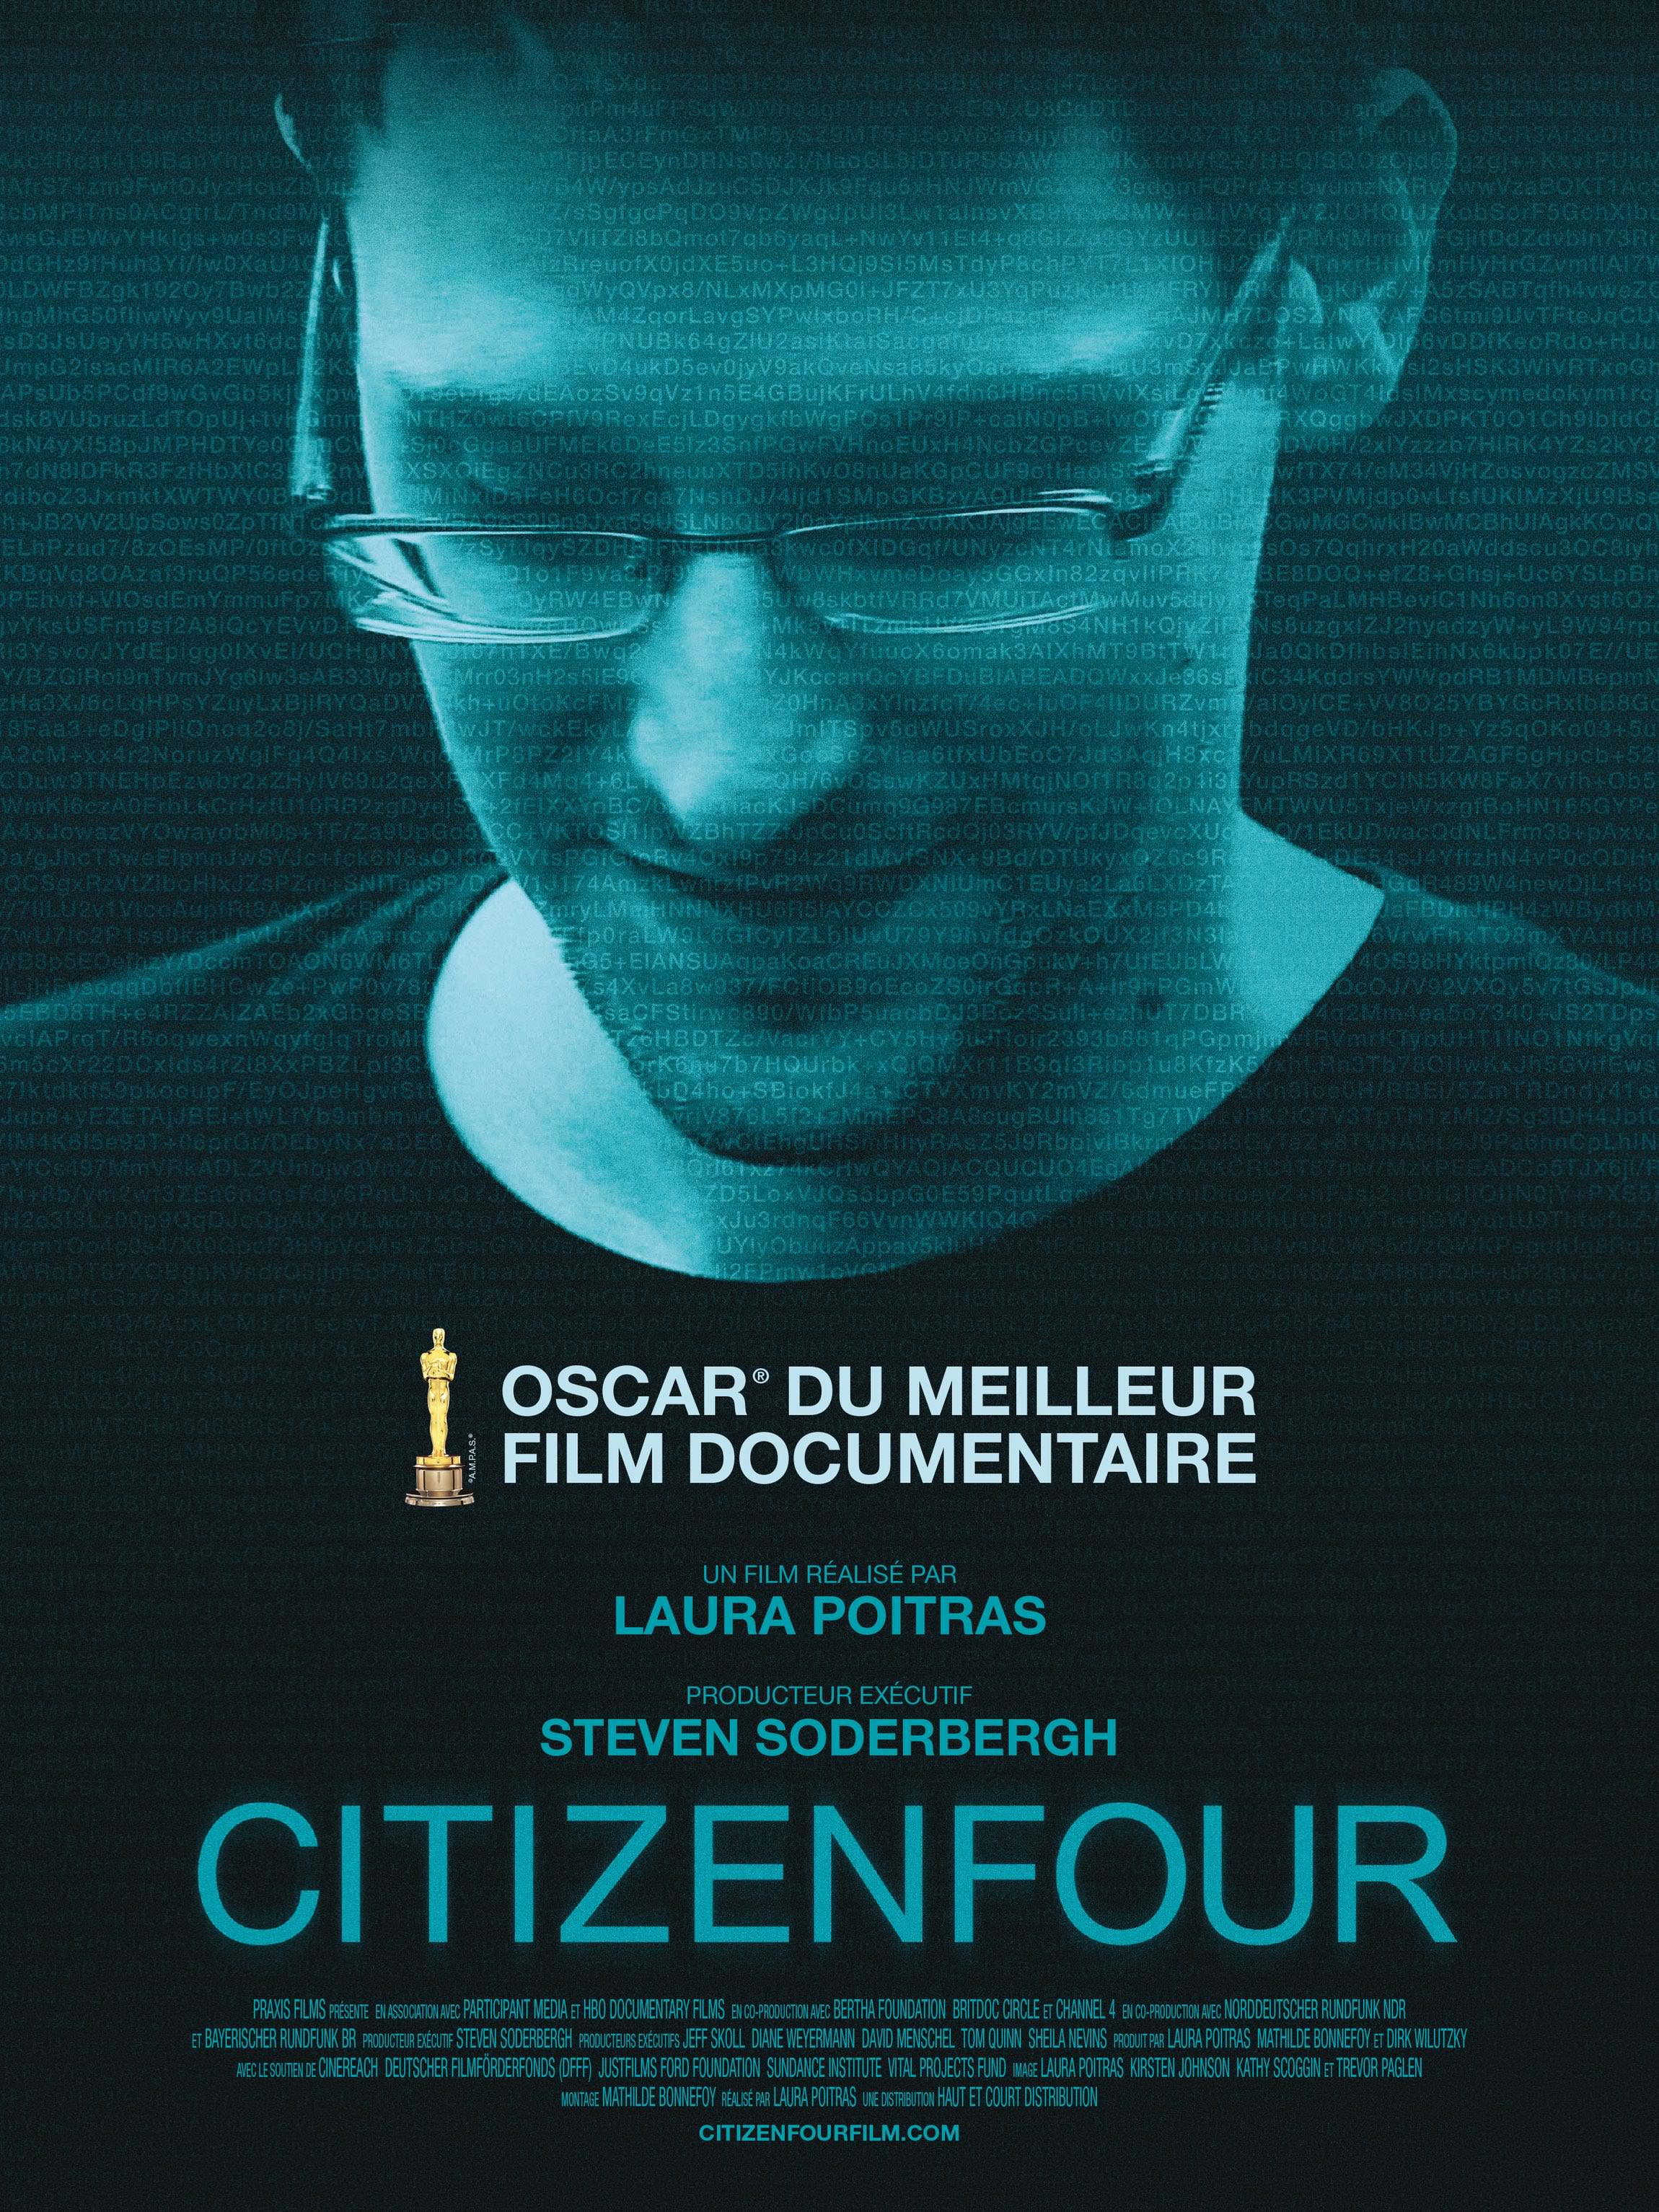 Citizenfour poitras